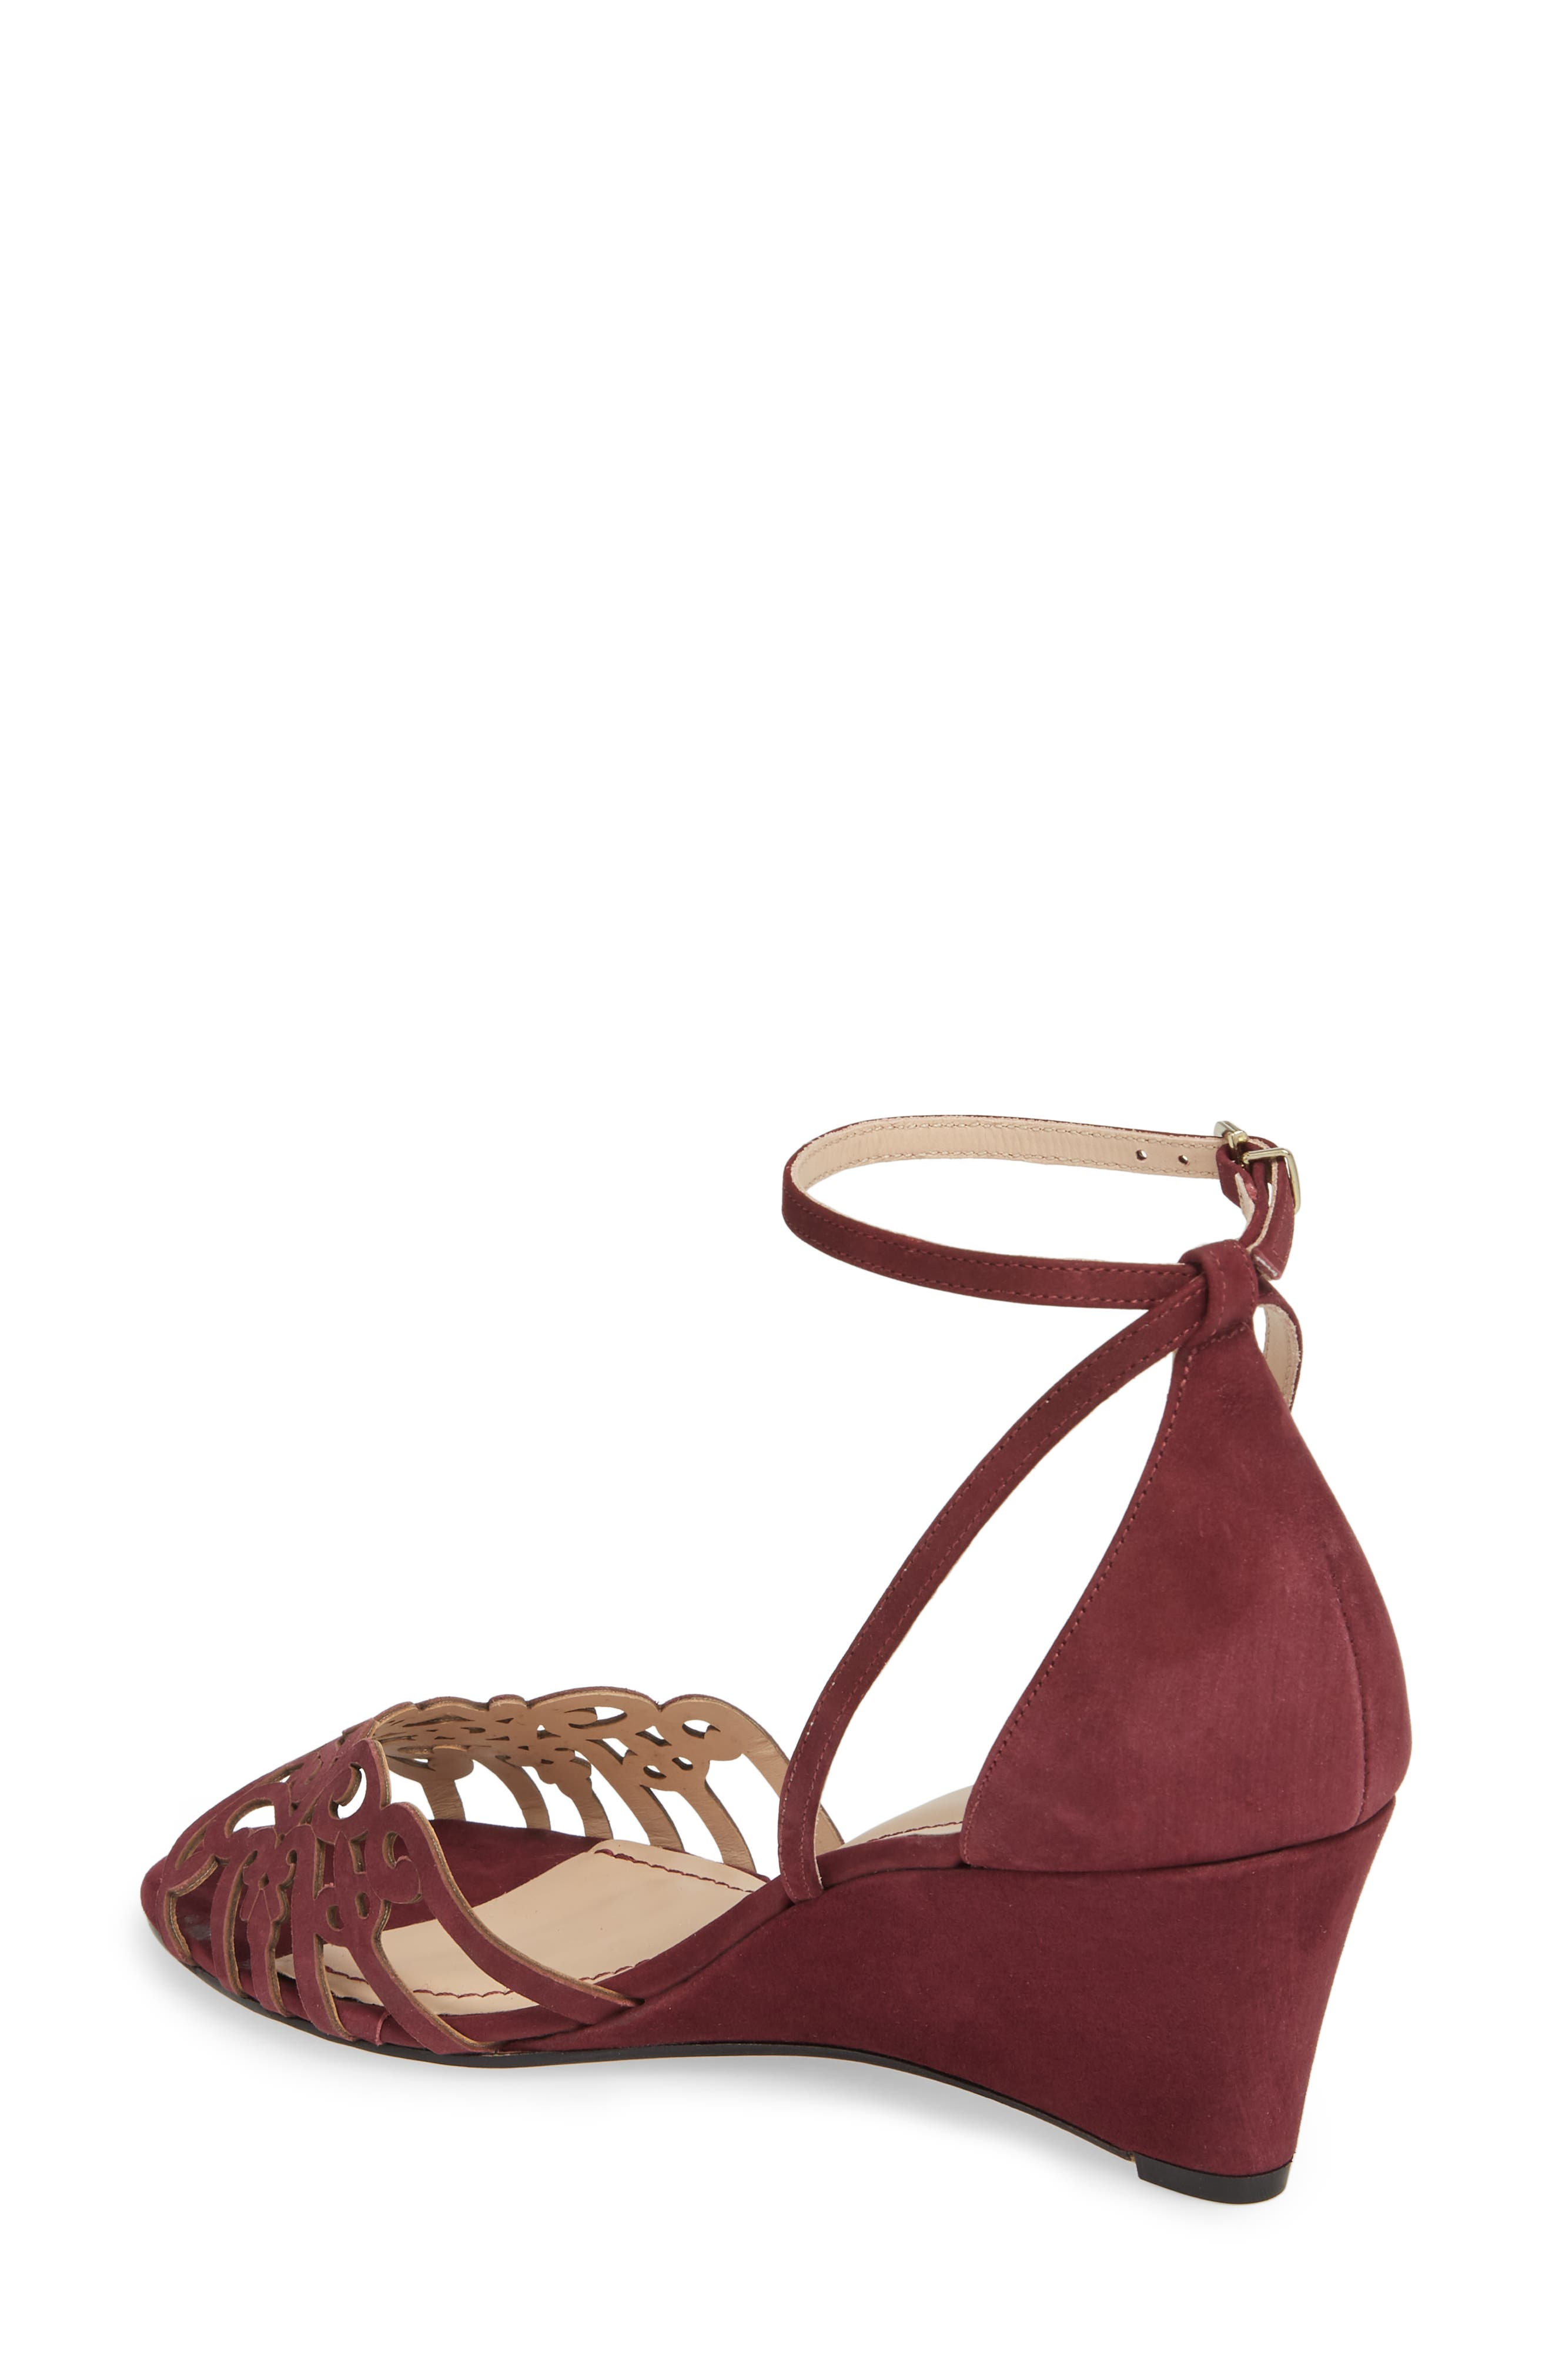 'Kingston' Ankle Strap Wedge Sandal,                             Alternate thumbnail 2, color,                             Wine Leather